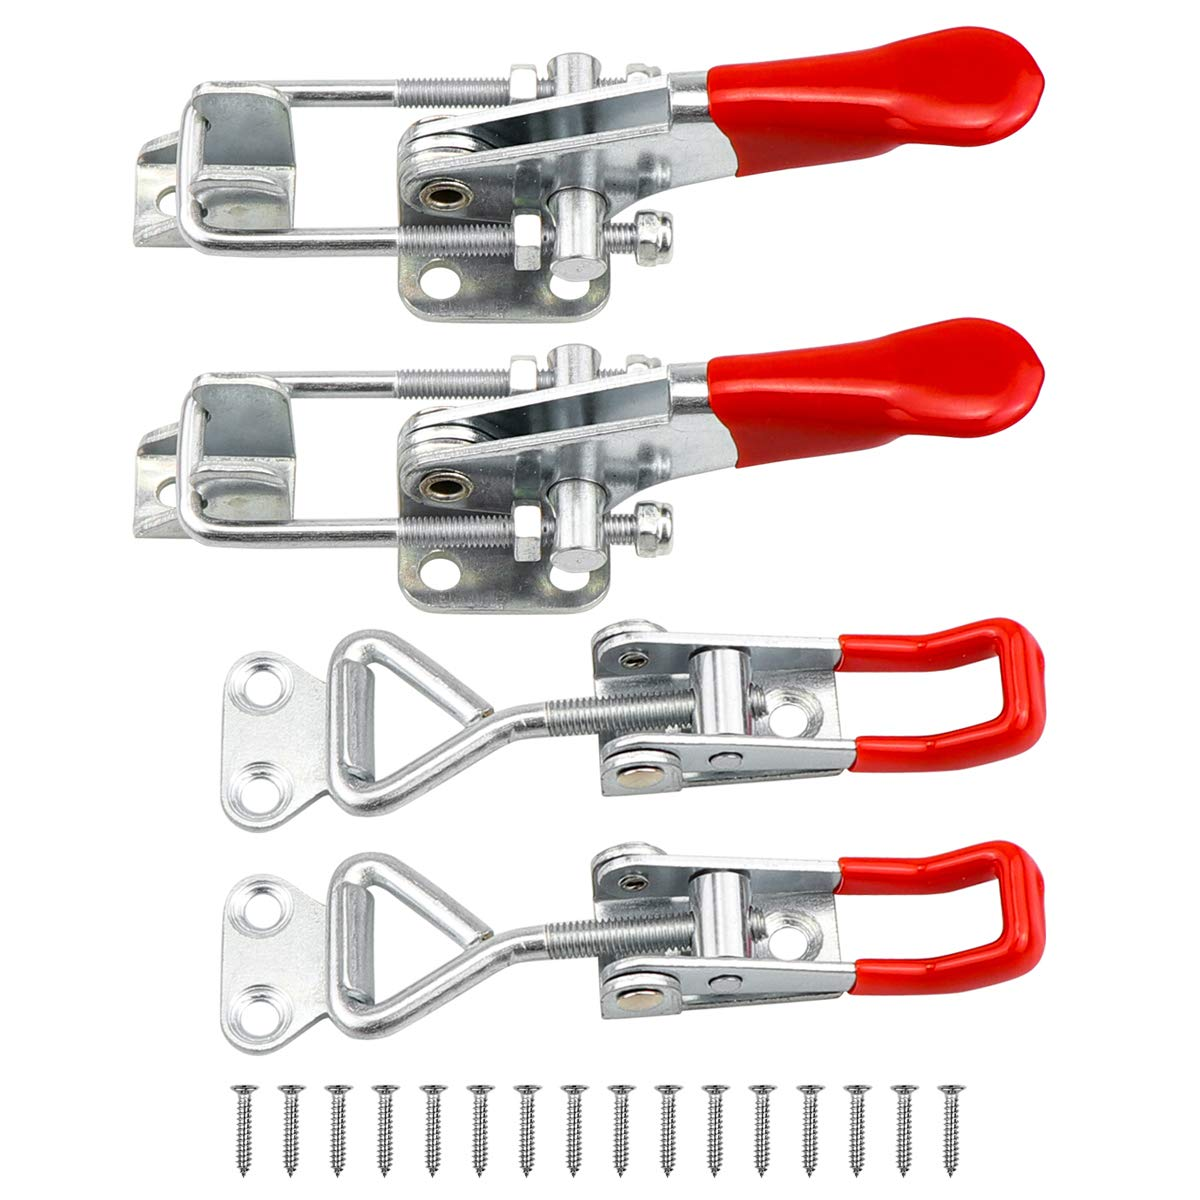 Yotako Toggle Clamp,4 Pack Adjustable Metal Draw Pull Latch Quick Release Clamp Heavy Duty 360lbs with 24 Pcs Screws for Smoker Jig Door Box Trailer